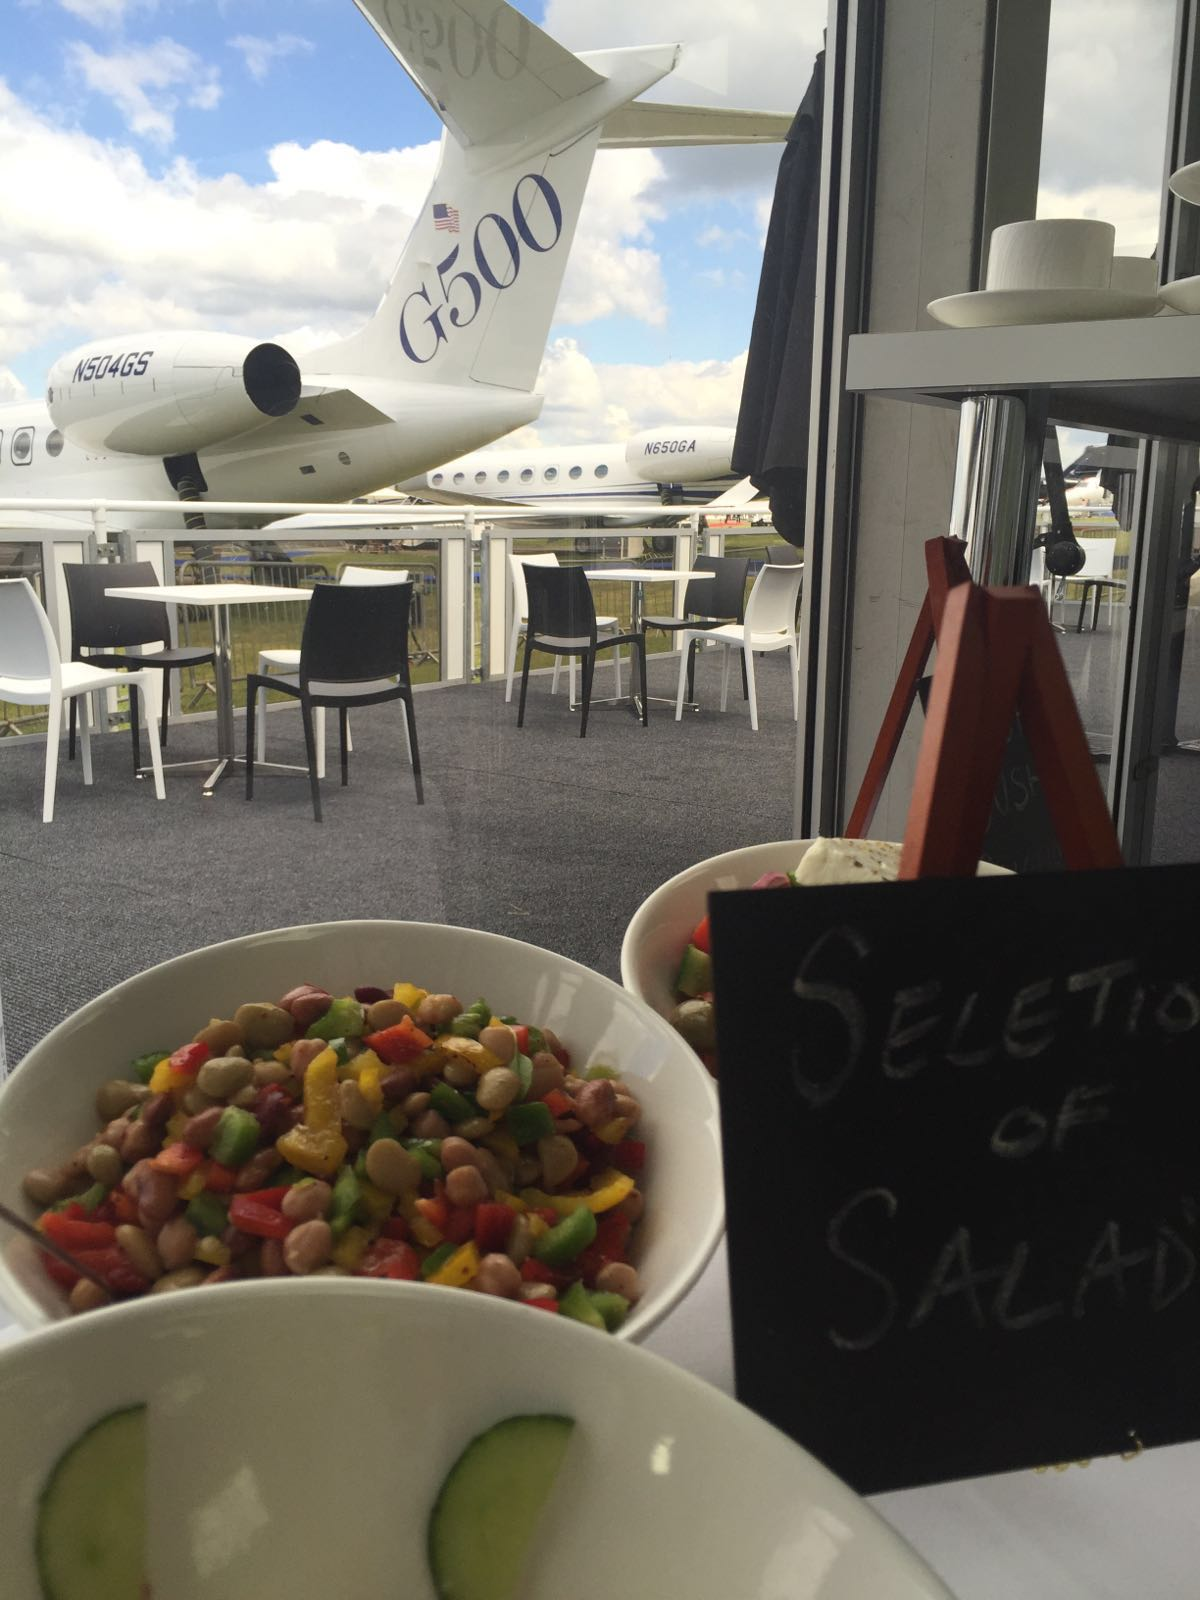 Spiros Cardiff corporate catering for Farnborough Air Show 2016